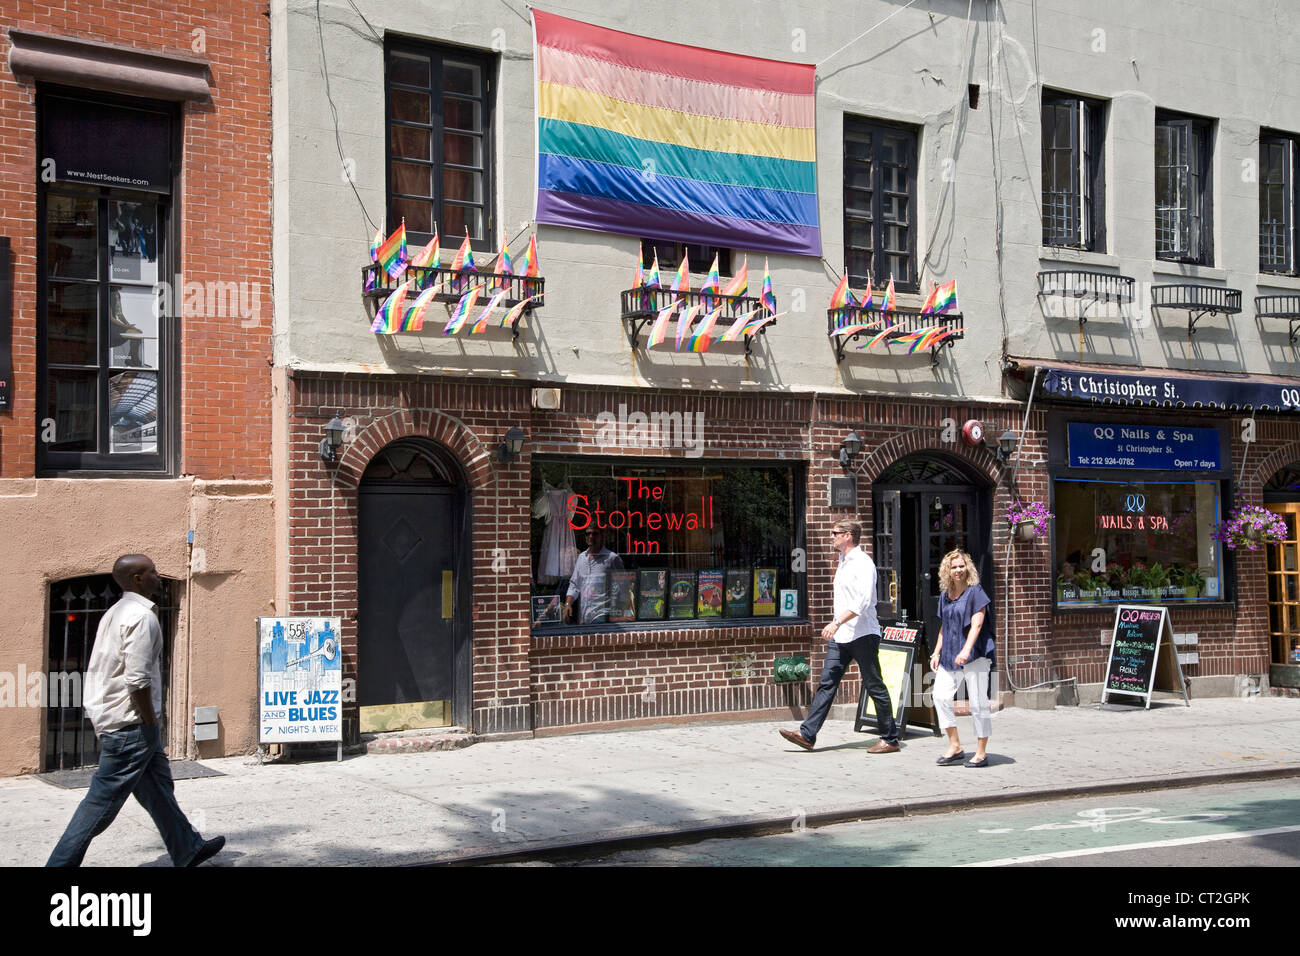 Stonewall Inn on Christopher St. in Greenwich Village, NYC. - Stock Image